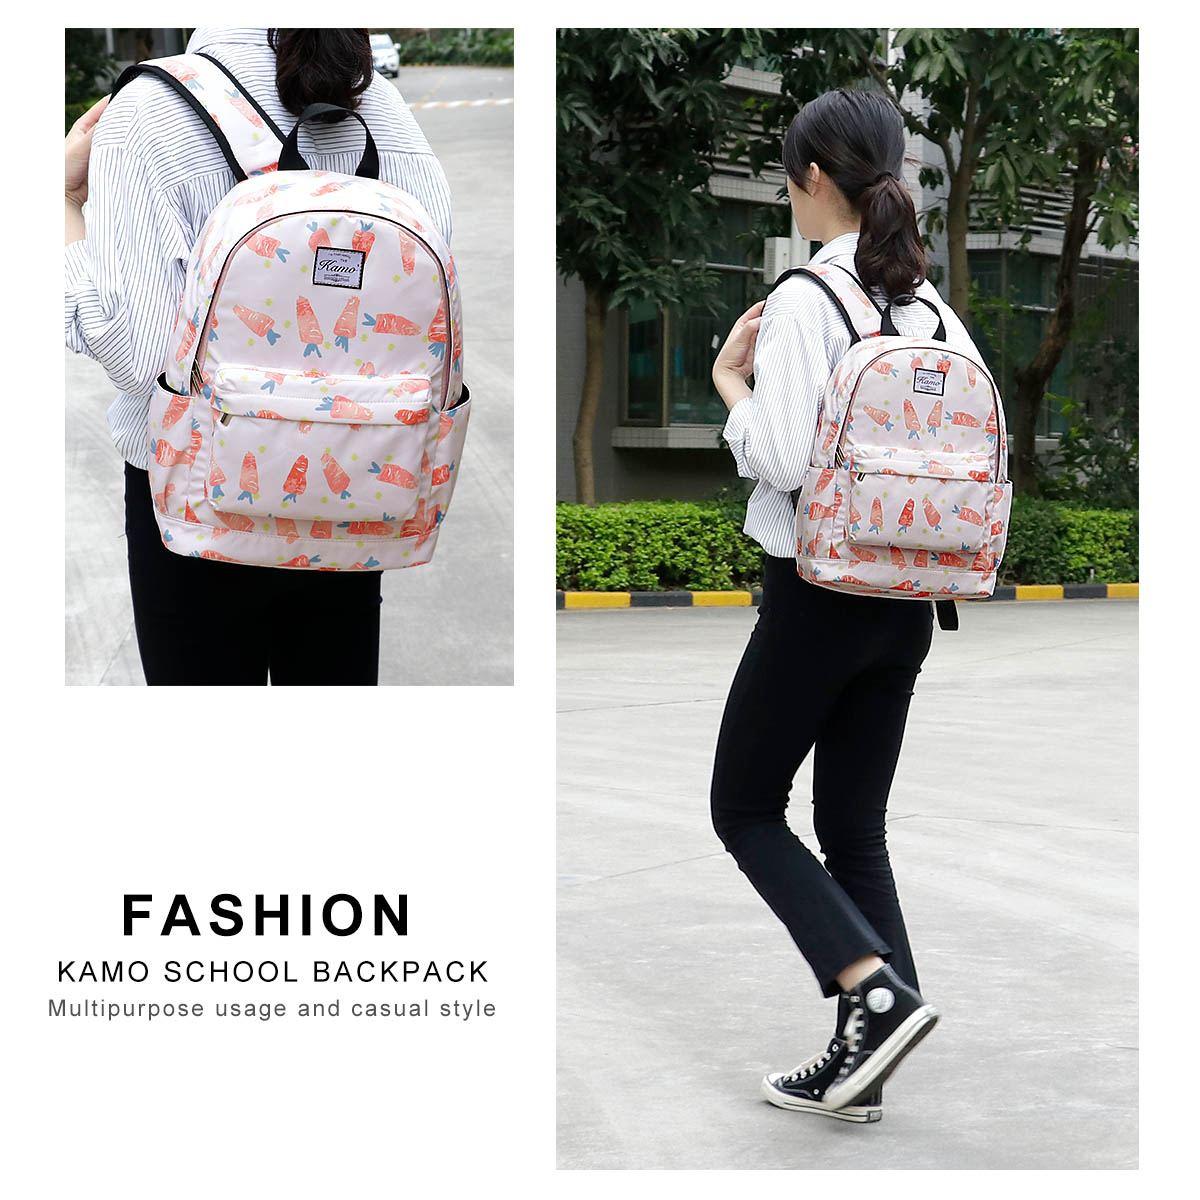 Indimization White Tailed Eagle Casual Daypack Leather Backpacks,Fashion Travel School Bag,College Student Bags for Boys /& Girls Holds 27x19.8x36.5cm//10.6x7.8x14in